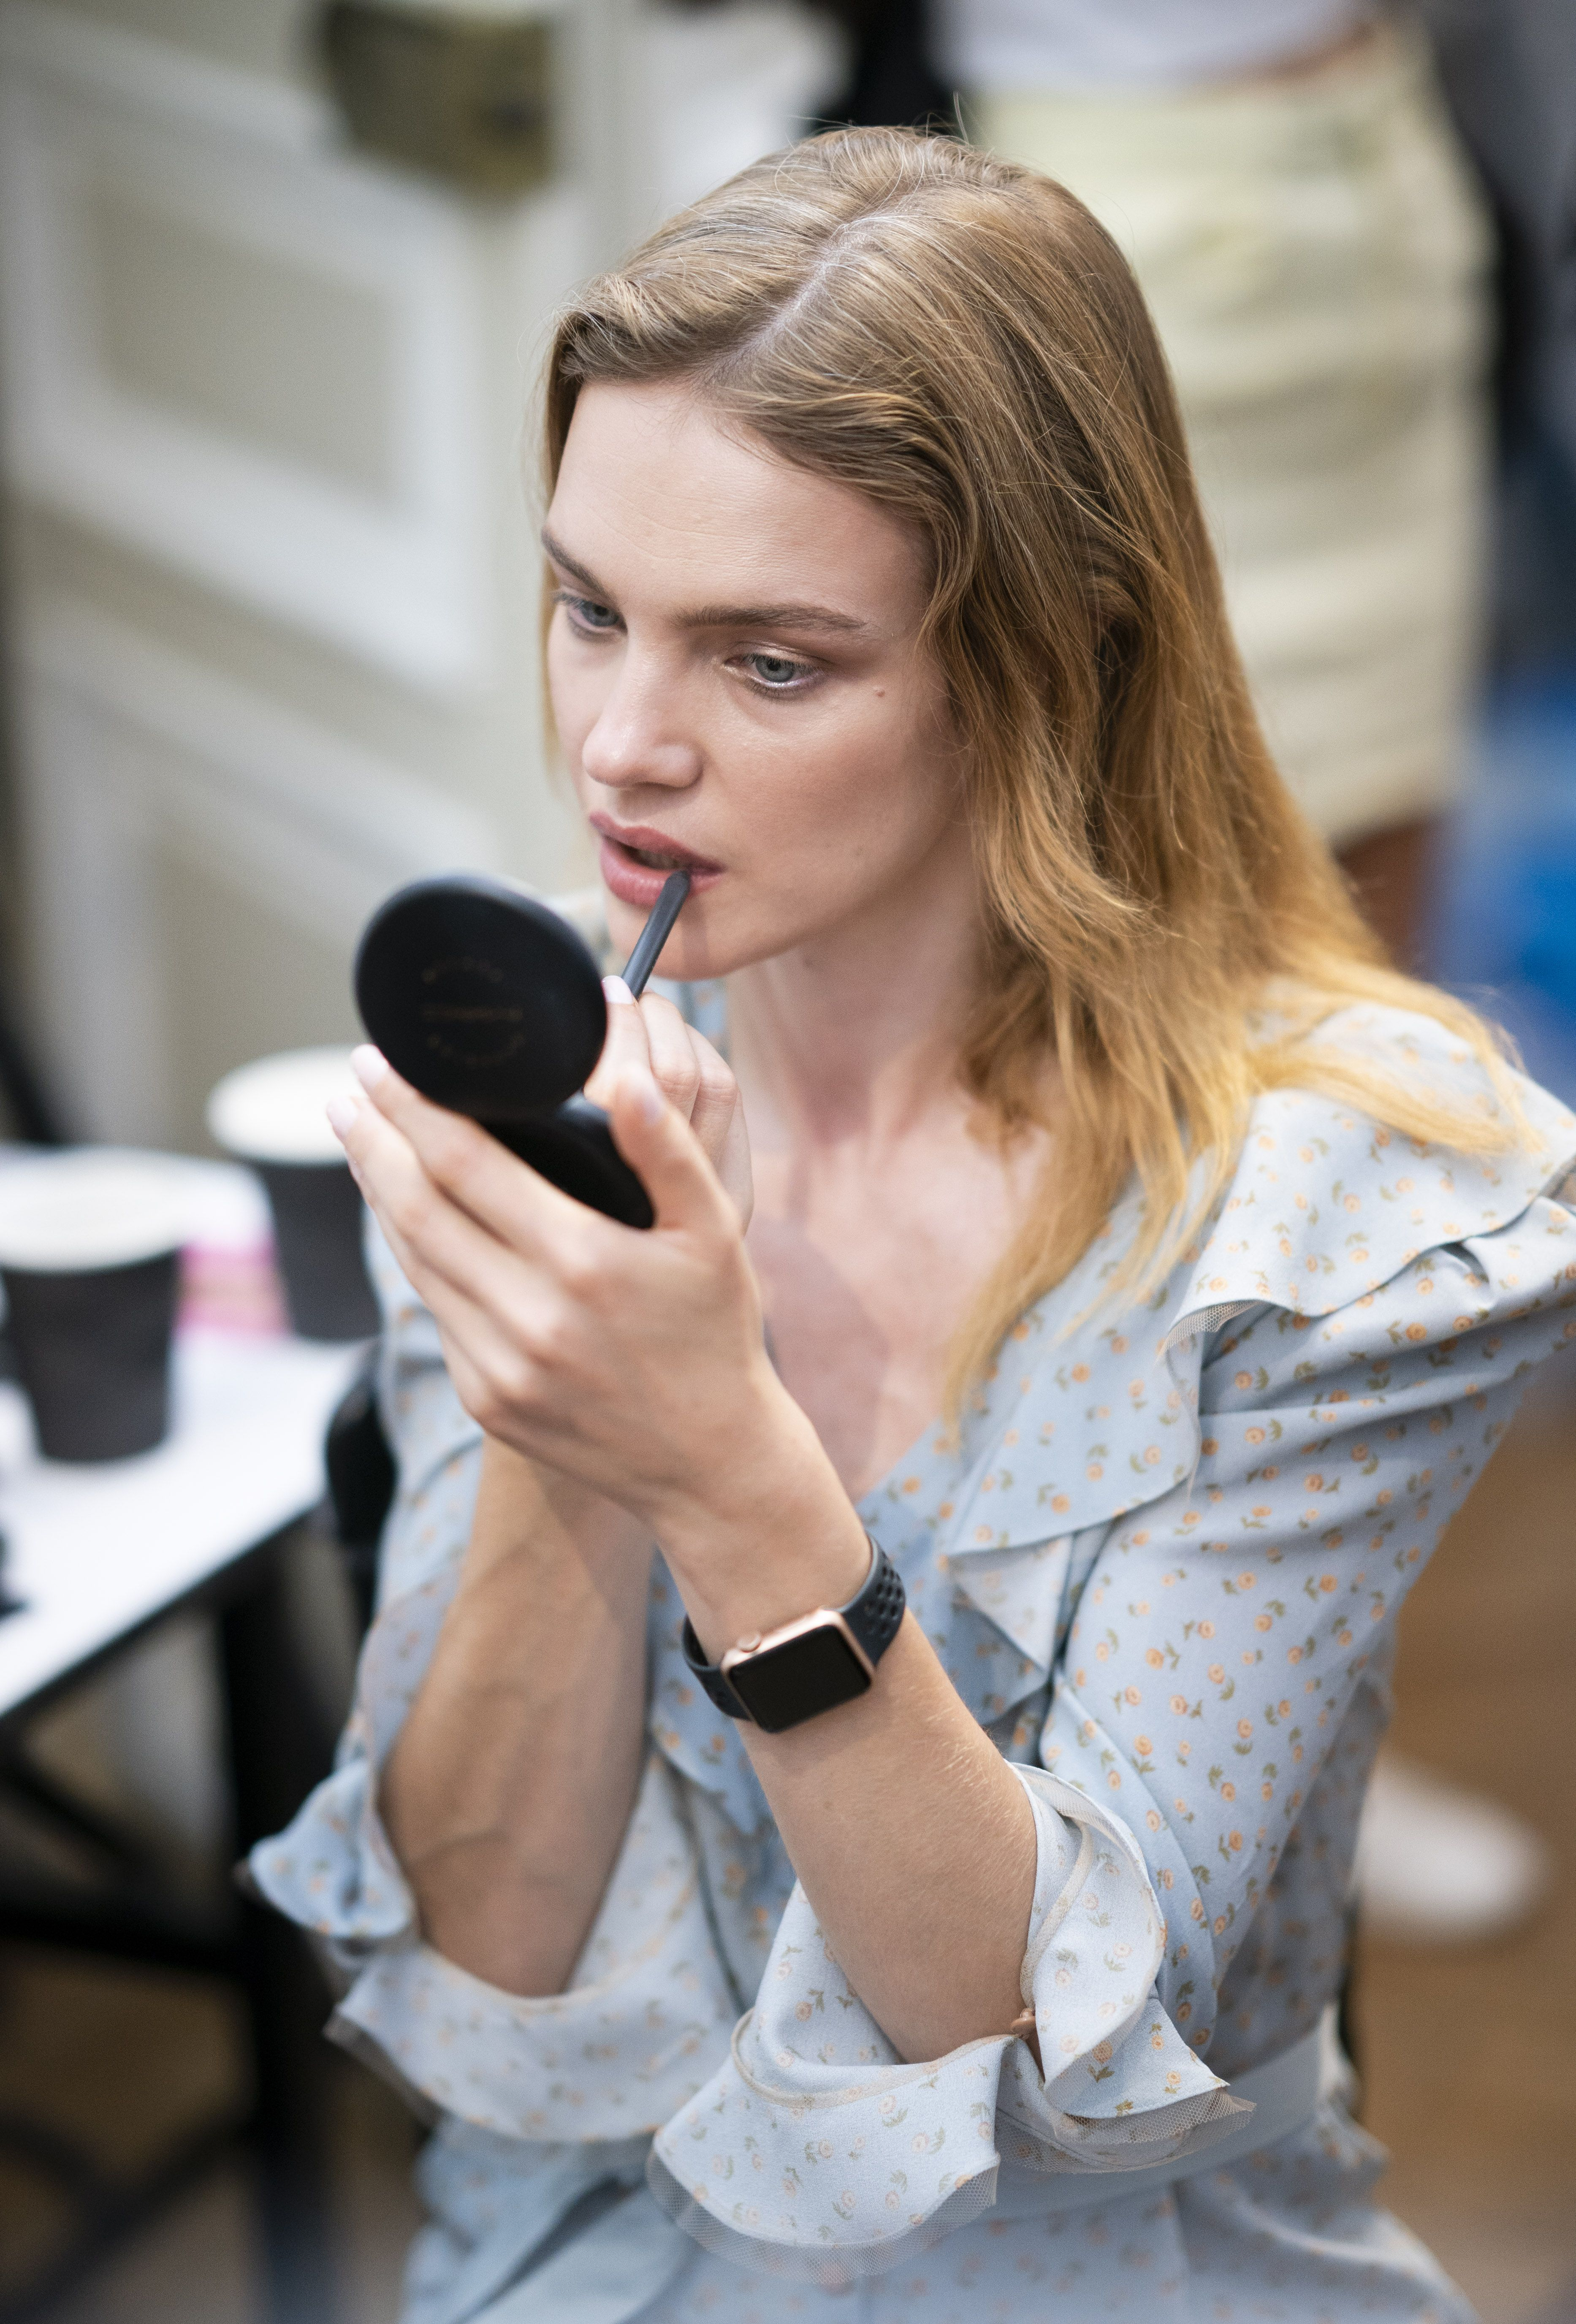 What You Need to Know Before Buying Used Makeup